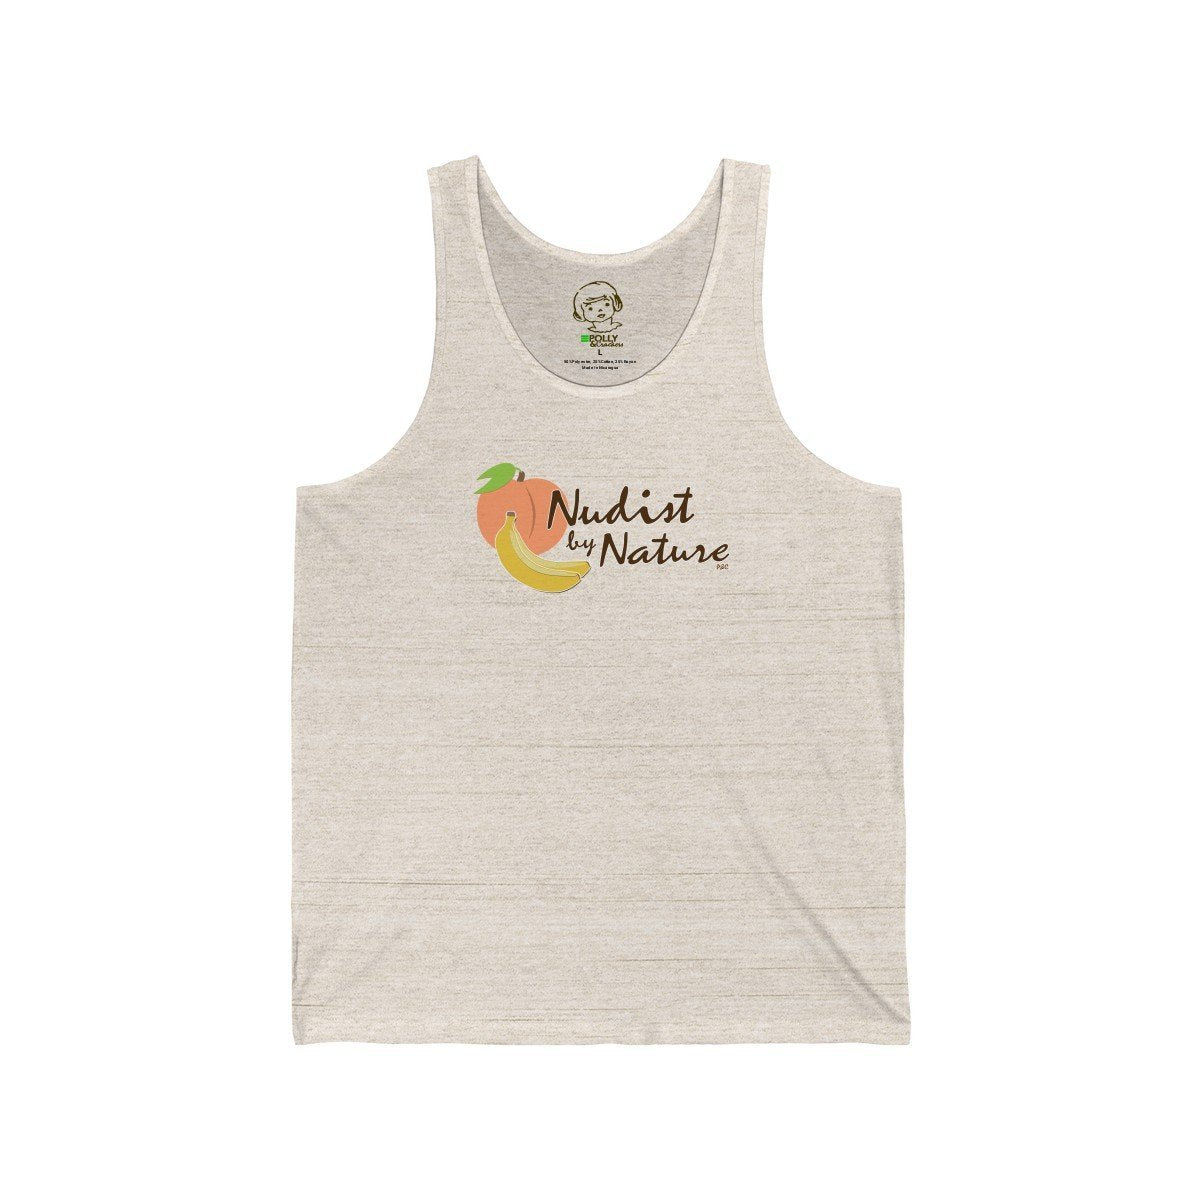 Nudist by Nature - Tank Top , Tank Top , Polly & Crackers Apparel